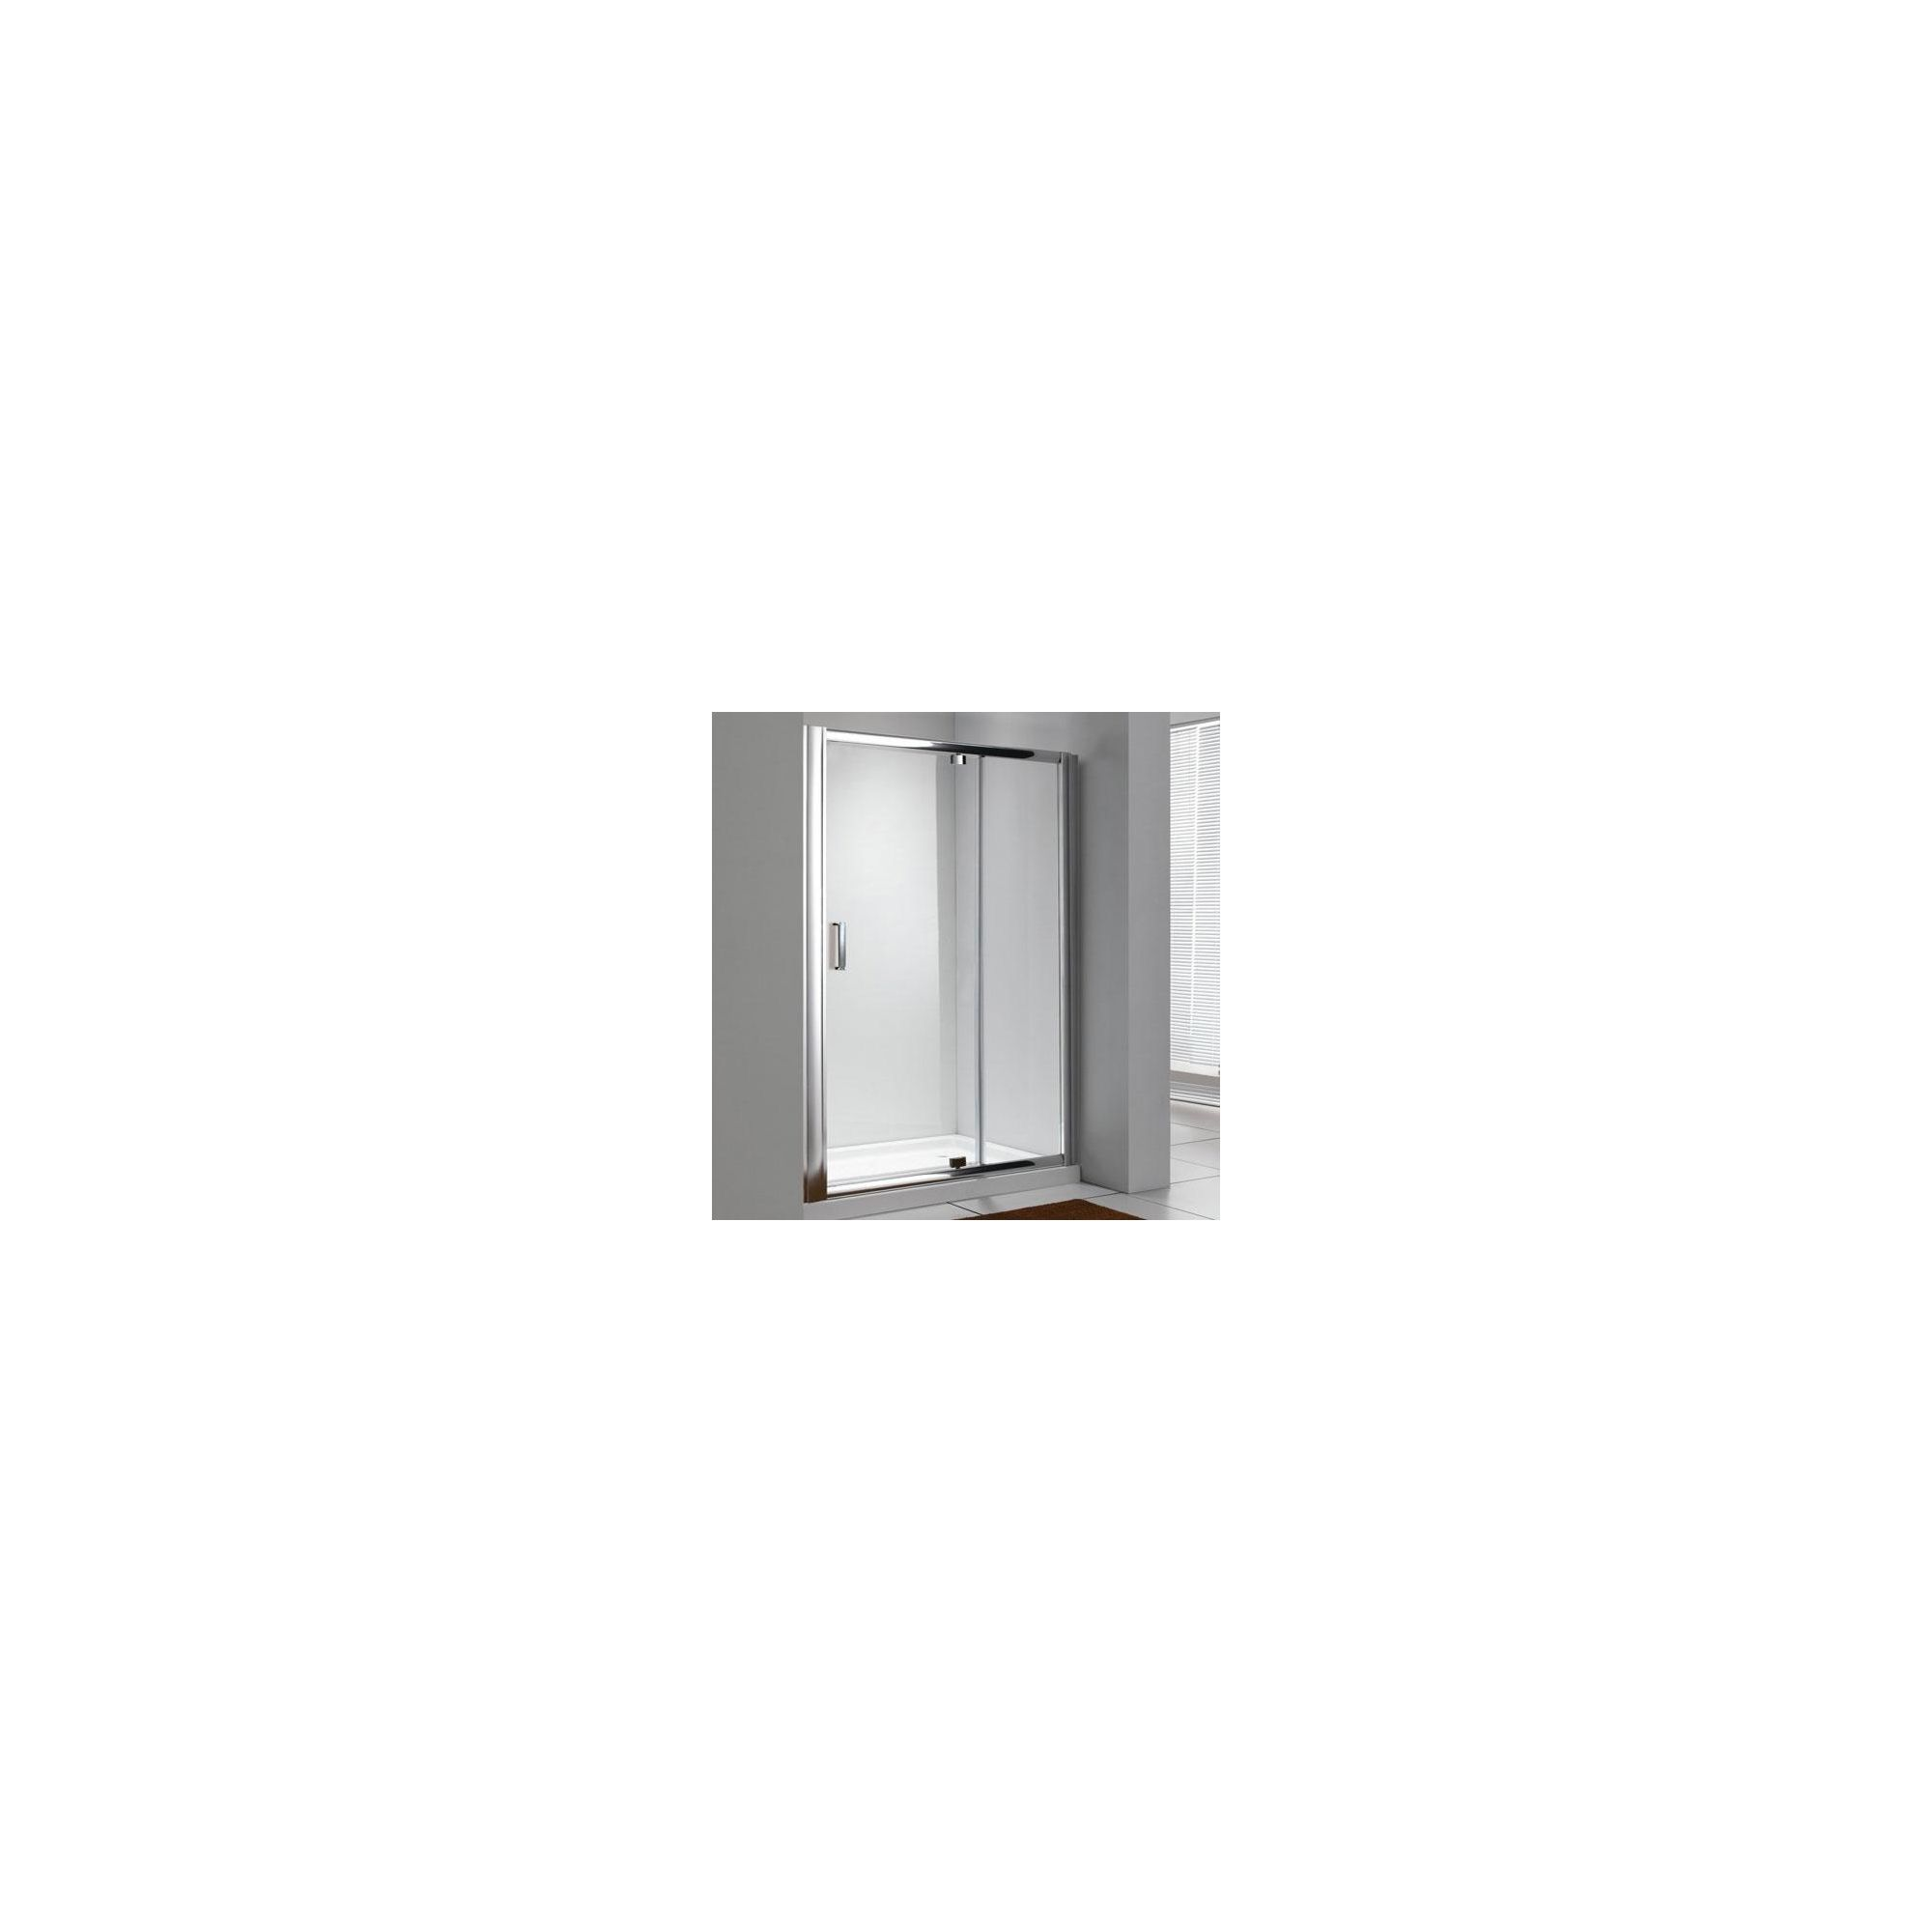 Duchy Style Pivot Shower Door, 1100mm Wide, 6mm Glass at Tesco Direct